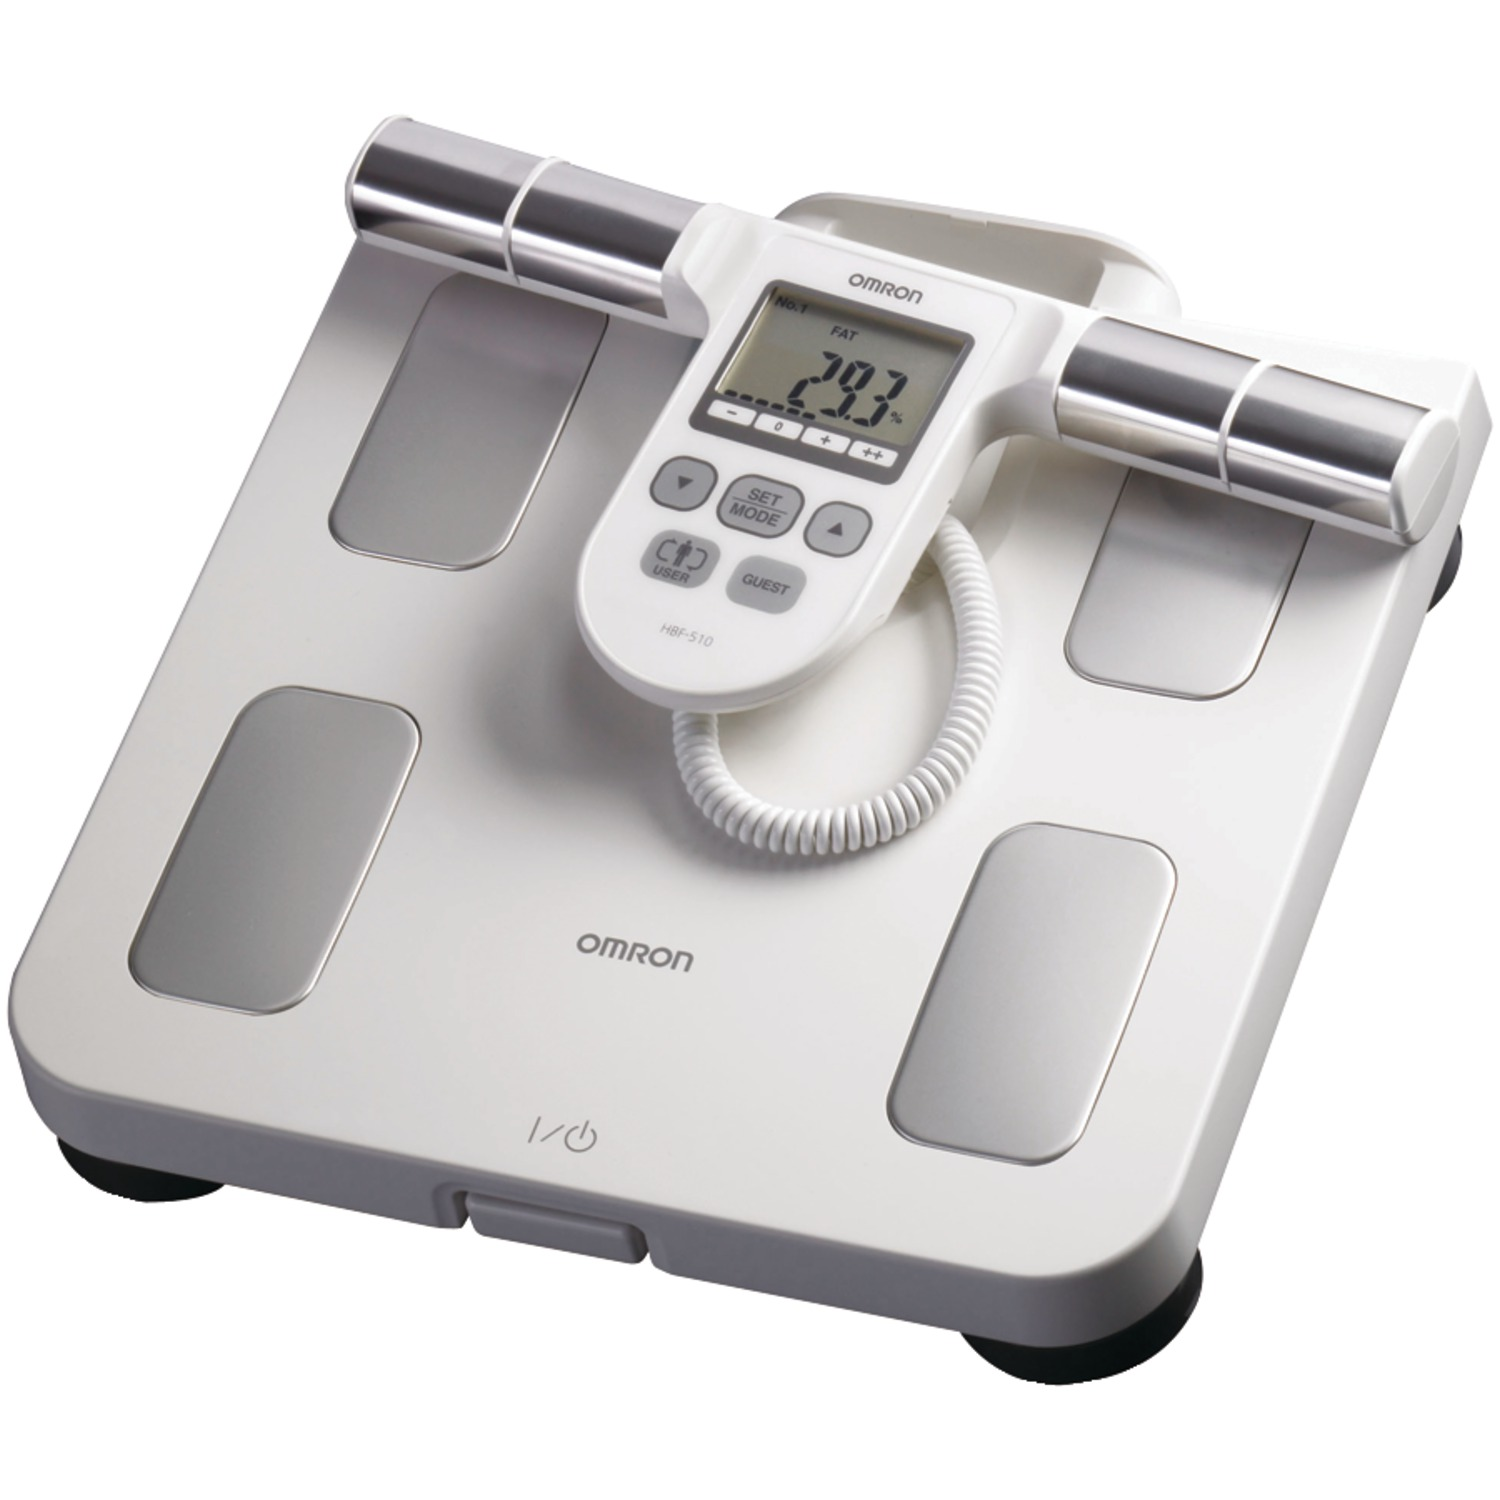 Omron Hbf-510w Full-body Sensor Body Composition Monitor & Scale With 5 Fitness Indicators